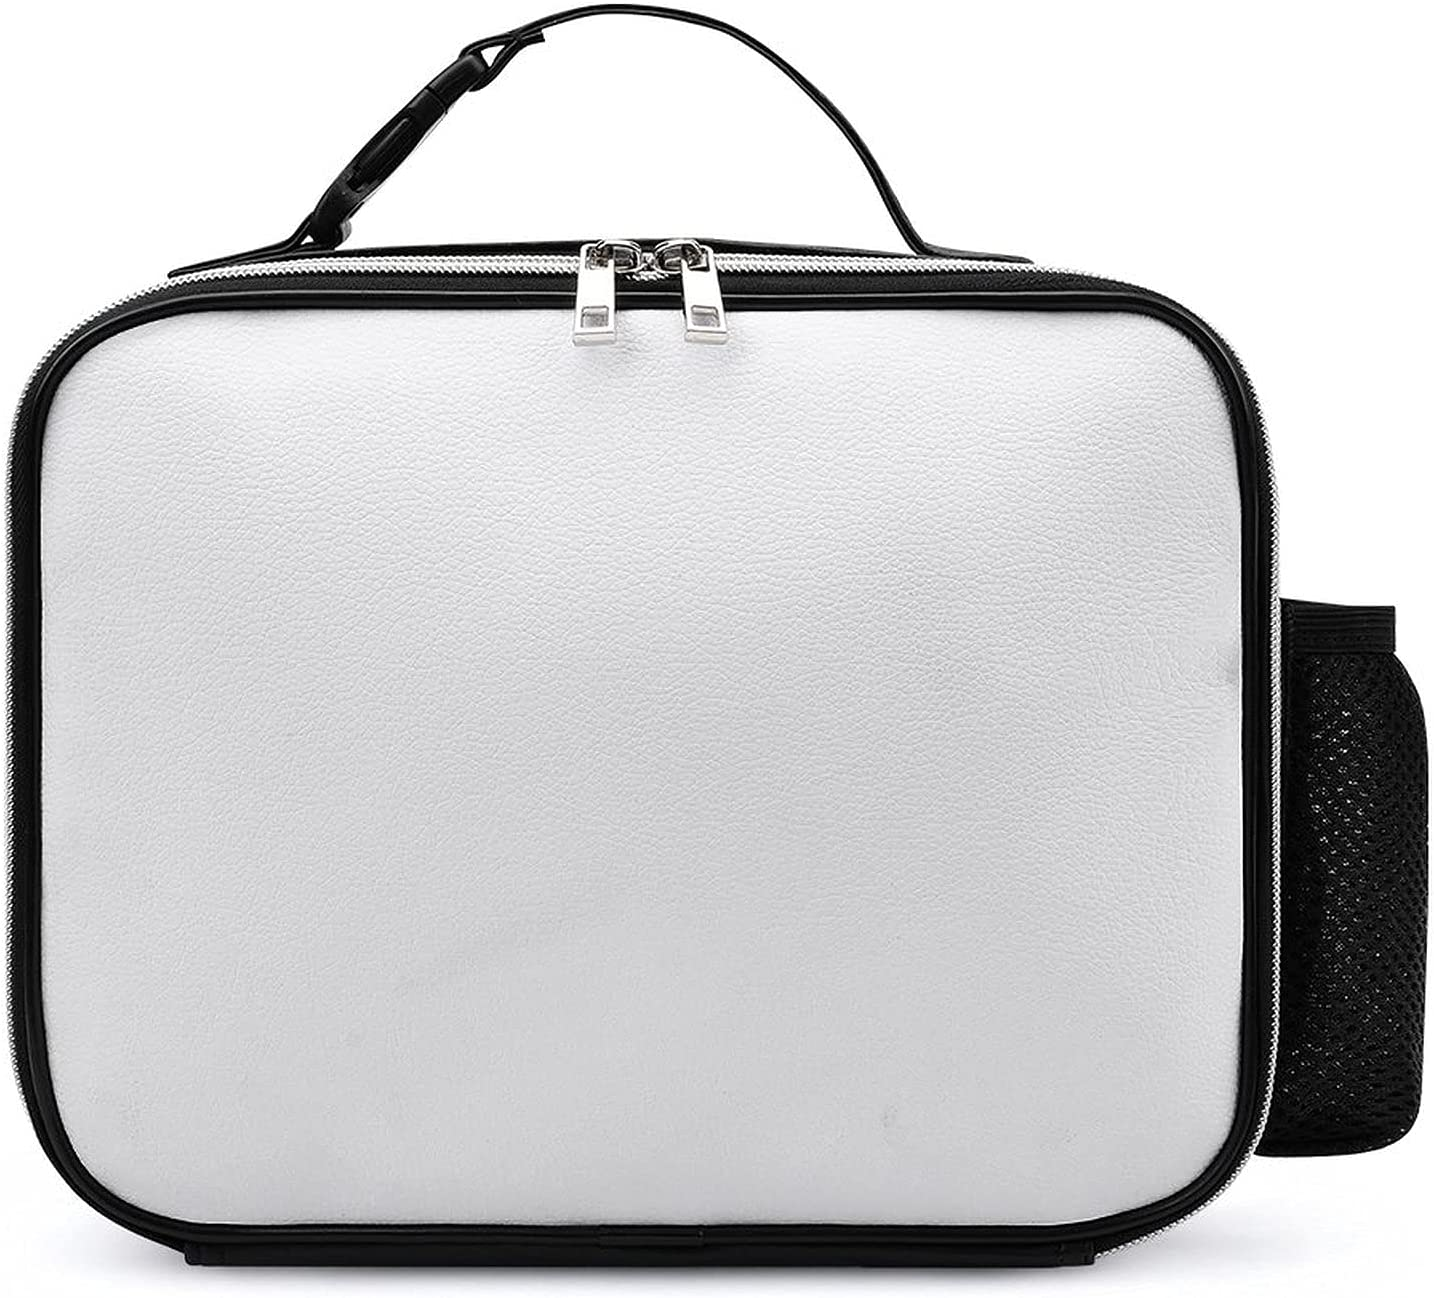 White Blank Lunch Bags For MenInsulated Thermal Lunch Tote BagLunch Box With Front Pocket For Office Work Picnic Fishing